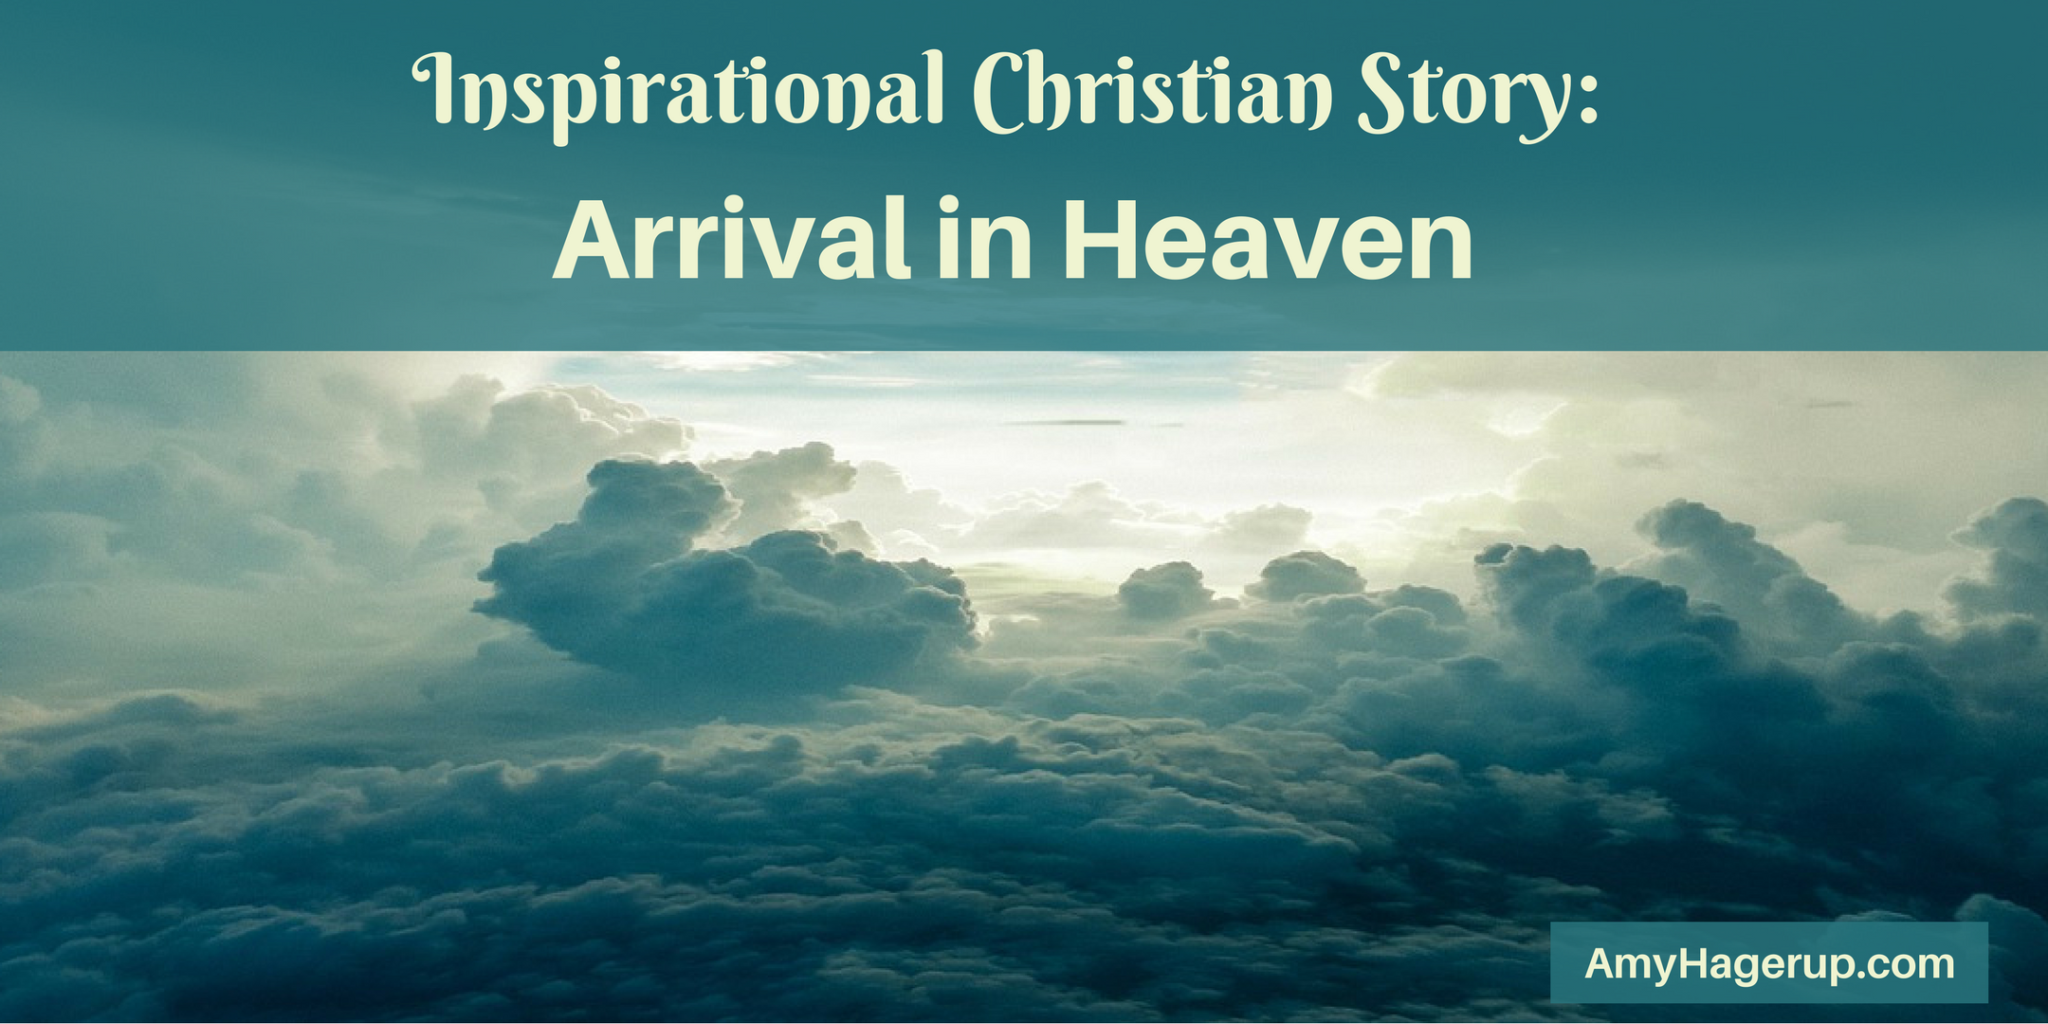 What an inspiring Christian story of how my mom envisioned arriving in heaven.